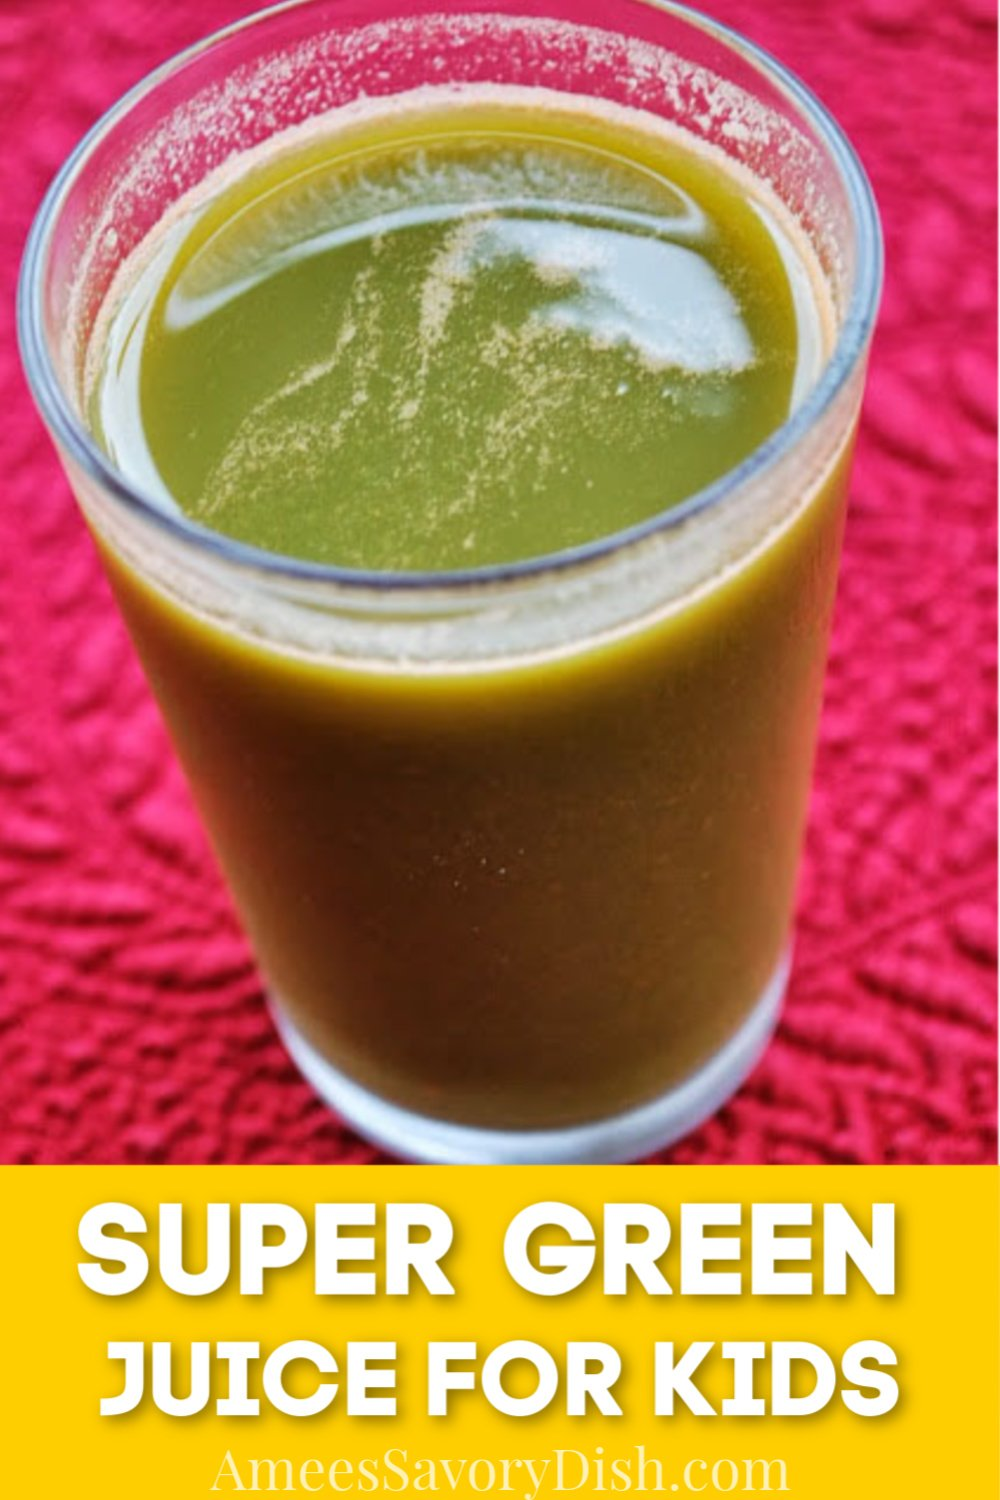 Super green juiceis an all-natural smoothie for kids. This easy smoothie recipe is made with fresh fruits and vegetables, with no added sugar.#greenjuice #greendrinks #juicingrecipe via @Ameessavorydish